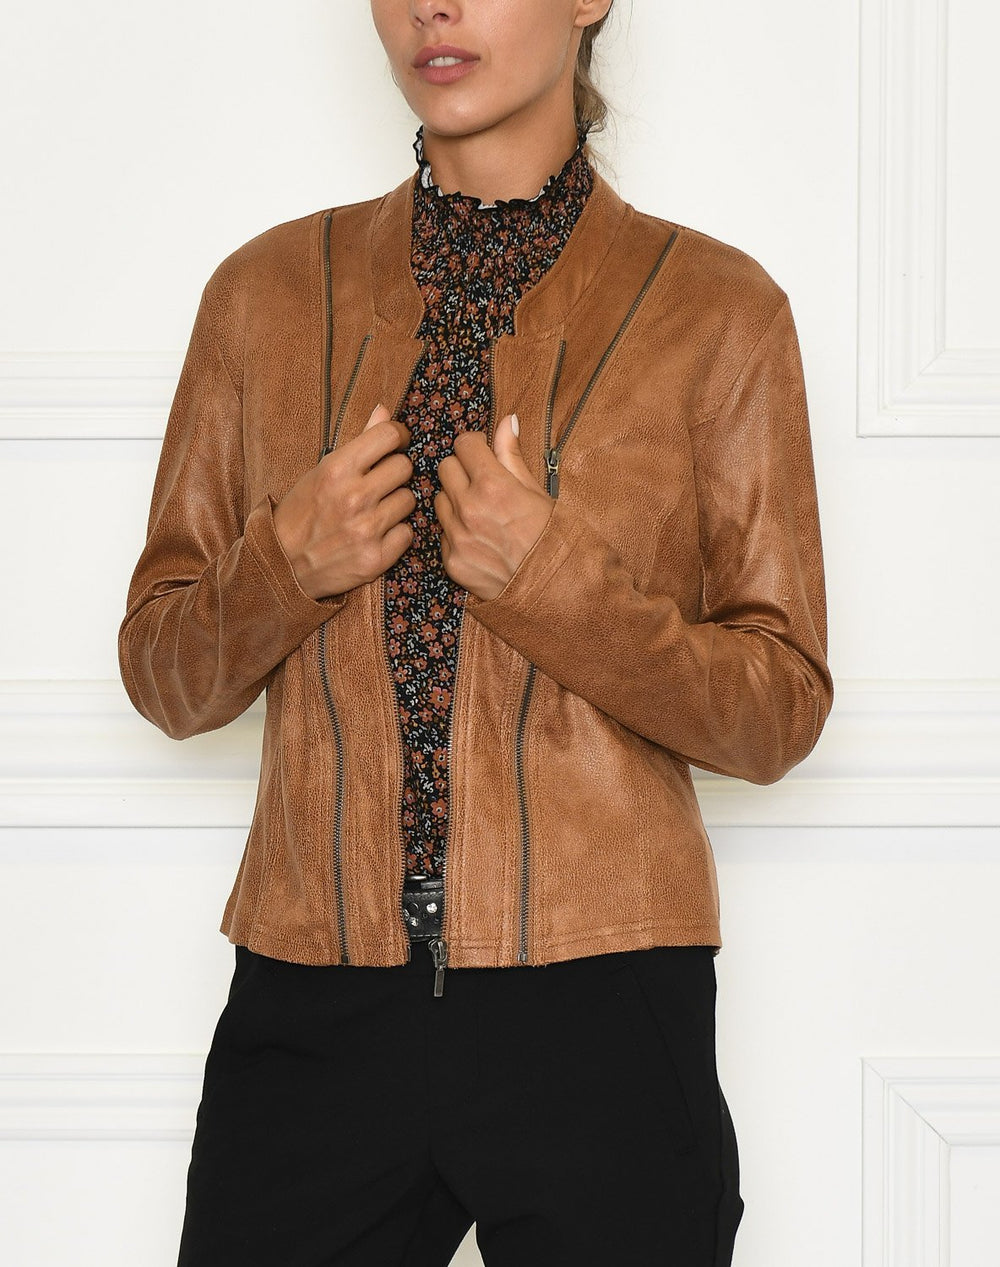 Luxzuz Athena coated suede jacket leather - Online-Mode